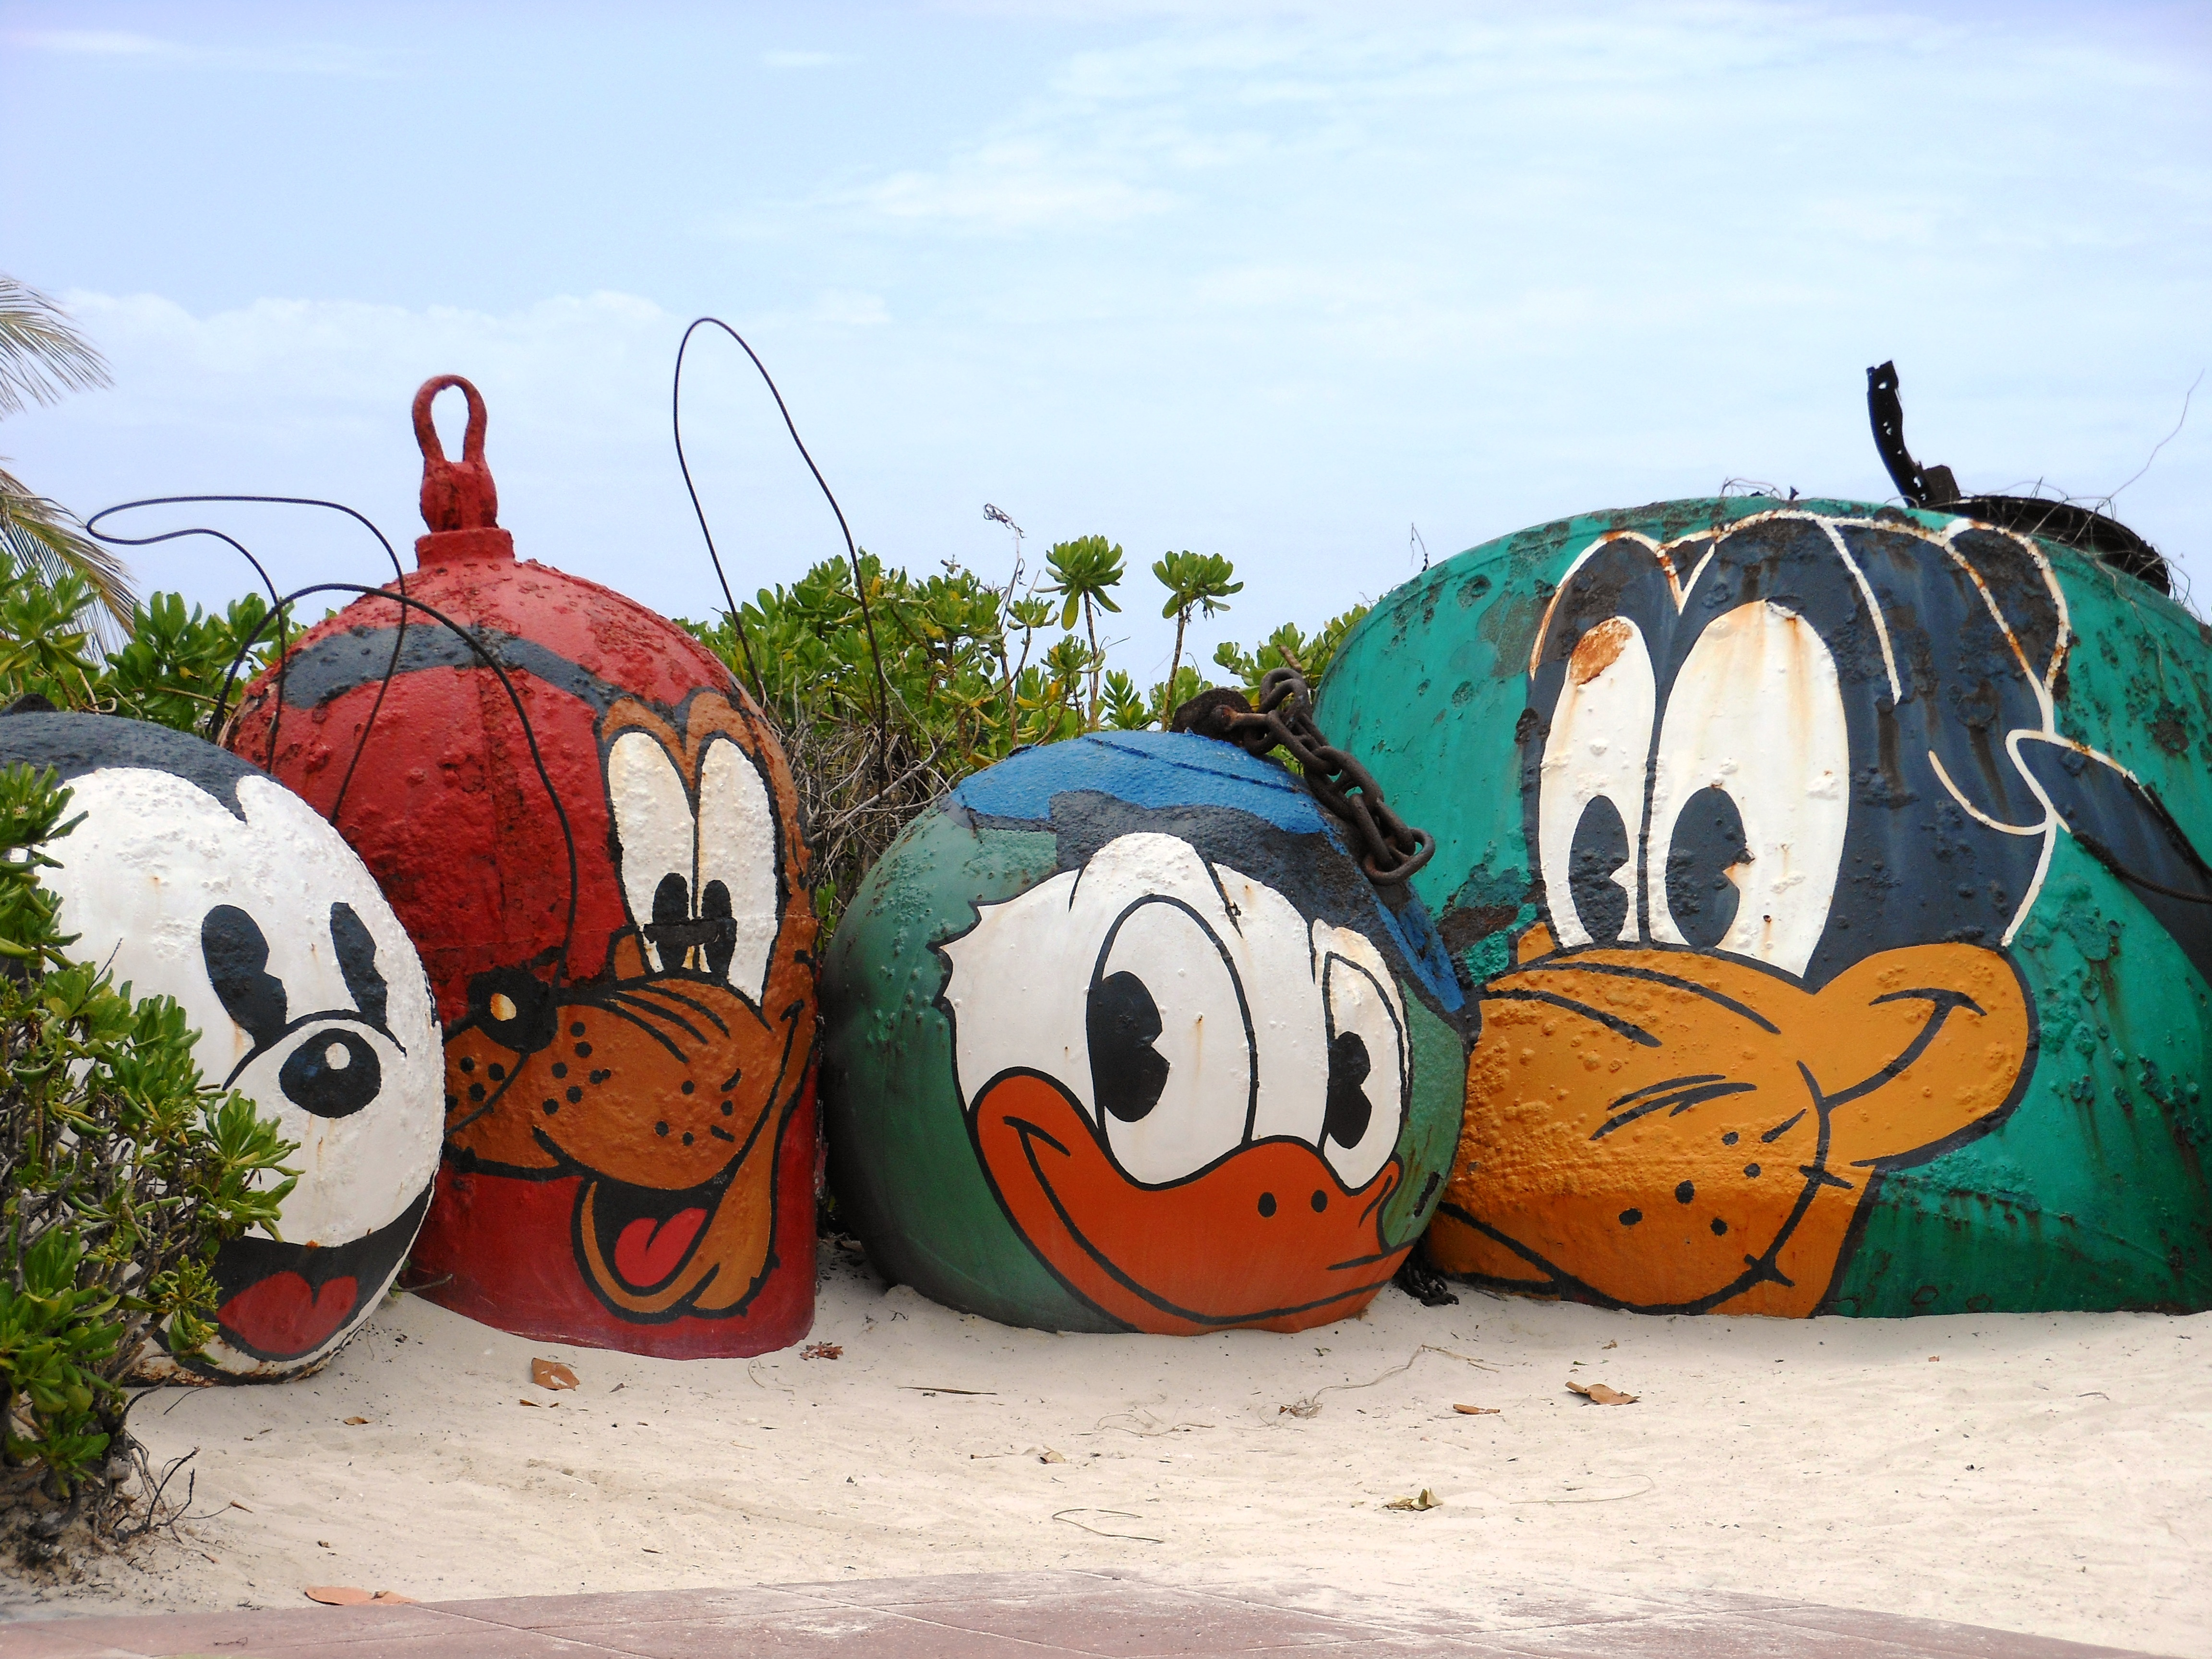 Welcome to Castaway Cay, Disney's private island in the Bahamas.